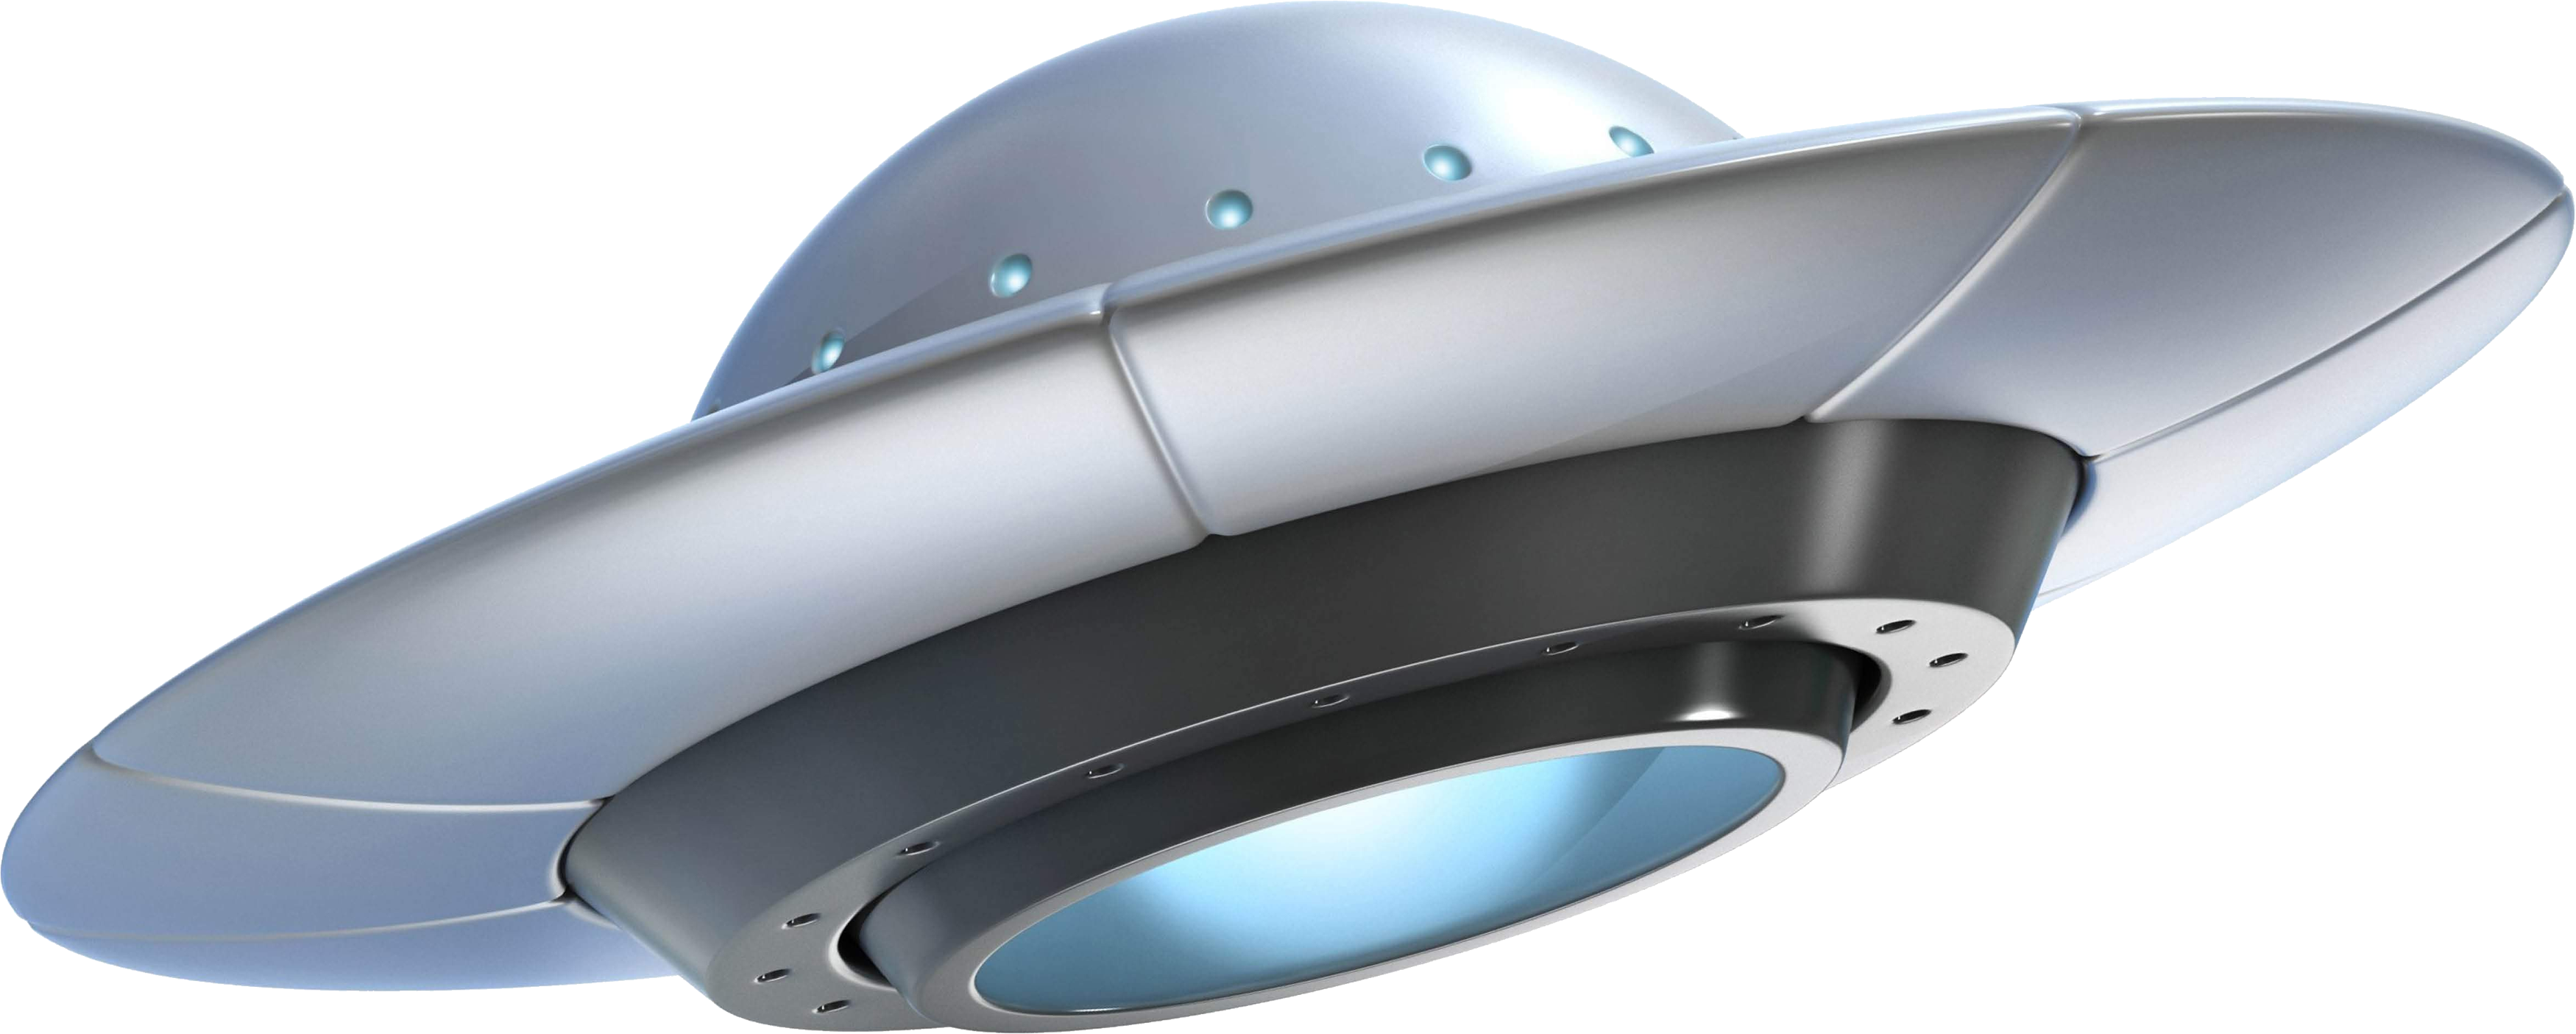 Ufo clipart high resolution. Png image purepng free